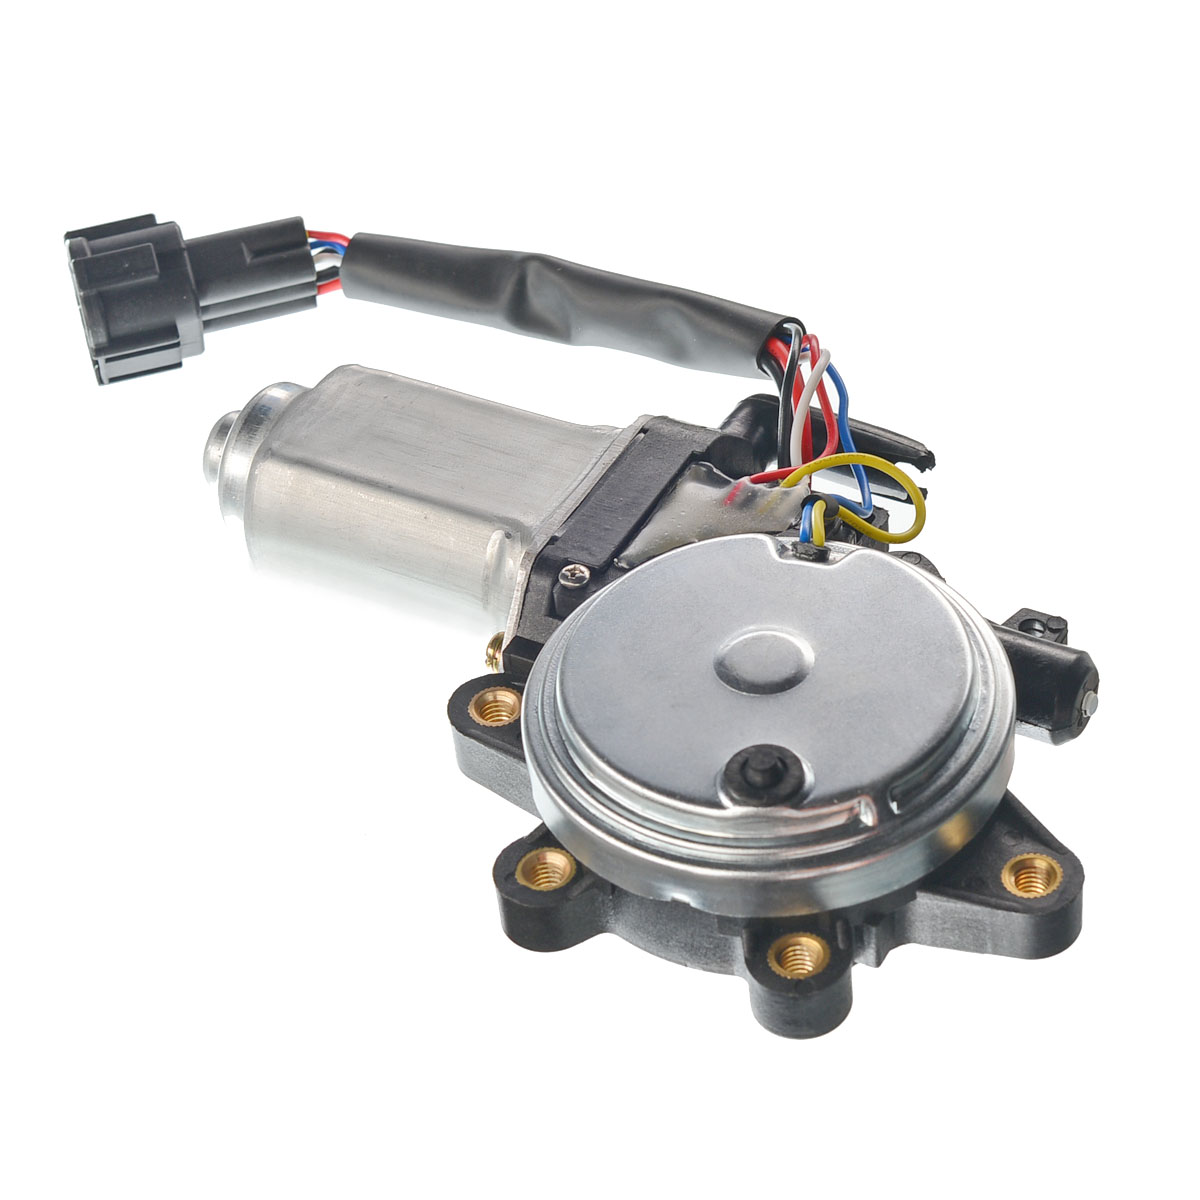 Window Lift Motor For Nissan Pathfinder 2005 2006 2007 2008 2009 2010 2017 Front Left Driver W Anti Clip In Lever Winding Handles From